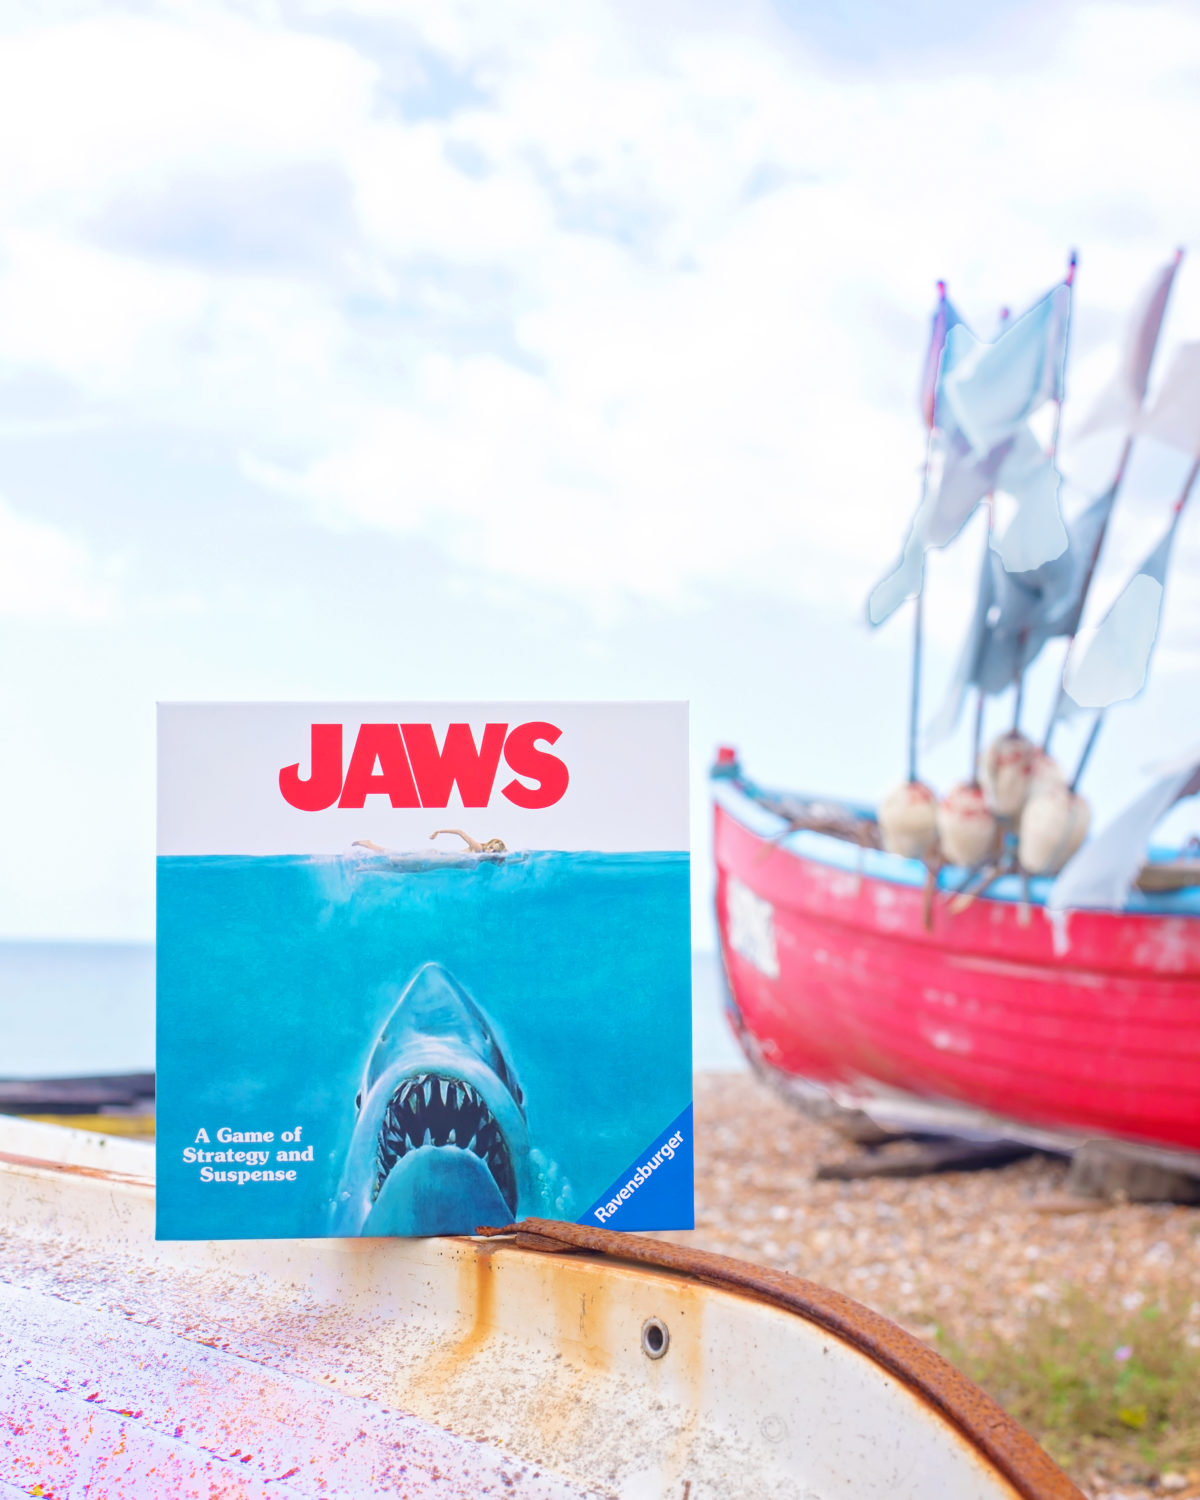 jaws the board game ravensburger on the beach creative board game photogtaphy sara-jayne jones